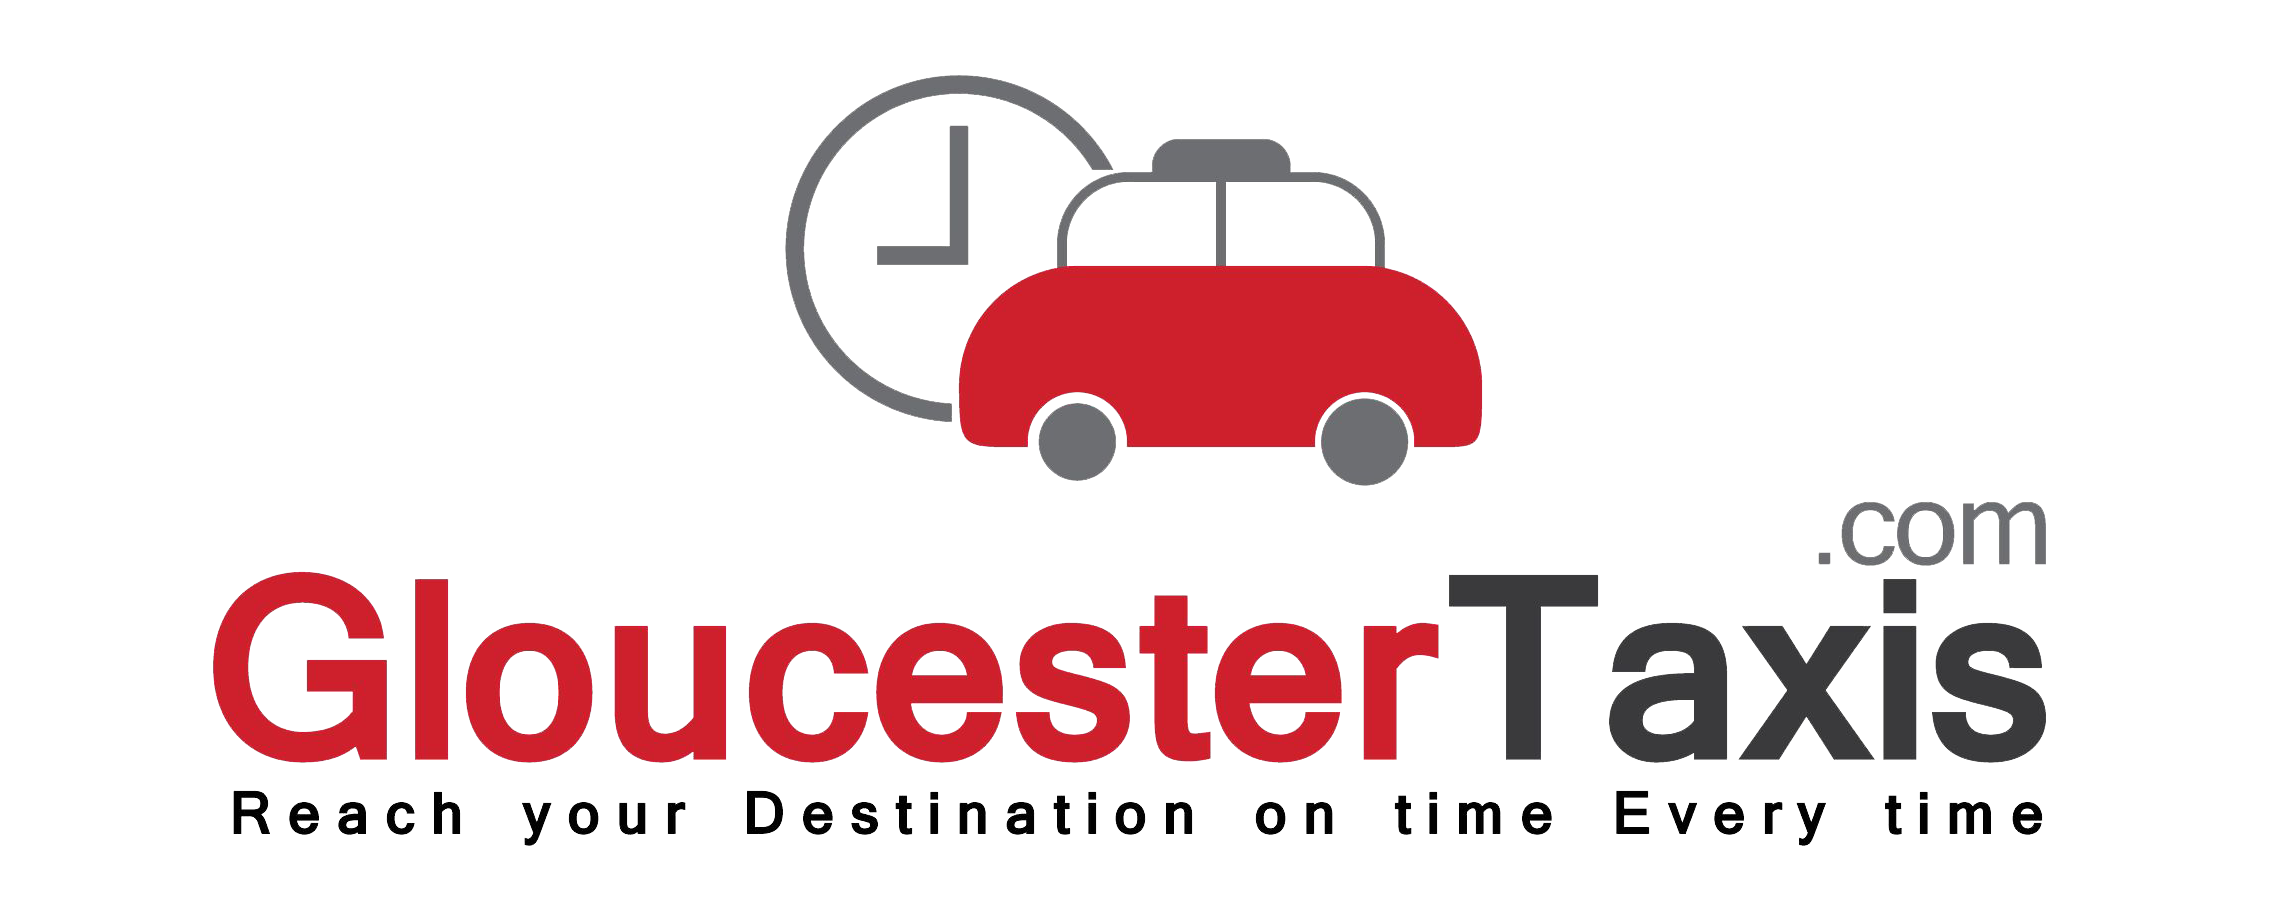 Gloucester Taxis - Gloucester's Local, Reliable & Safe Taxi Service | Taxi Gloucester, Gloucester Taxi, Gloucester Taxis, Taxis Gloucester